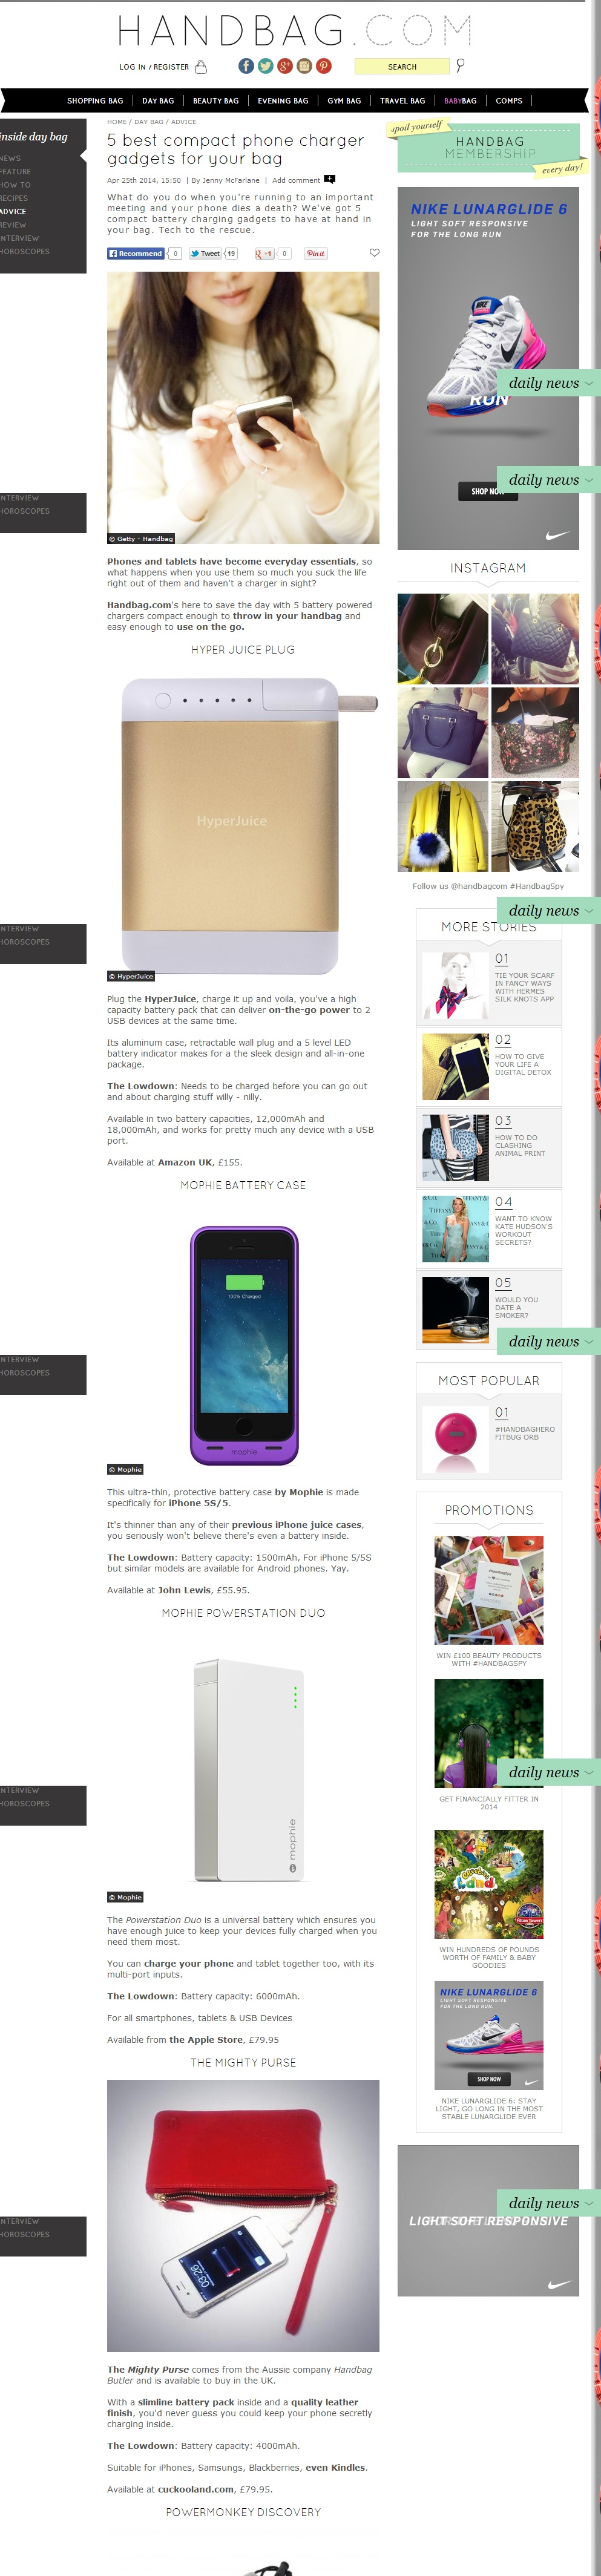 screencapture-www-handbag-com-day-bag-advice-a566596-5-best-compact-phone-charger-gadgets-for-your-bag-html